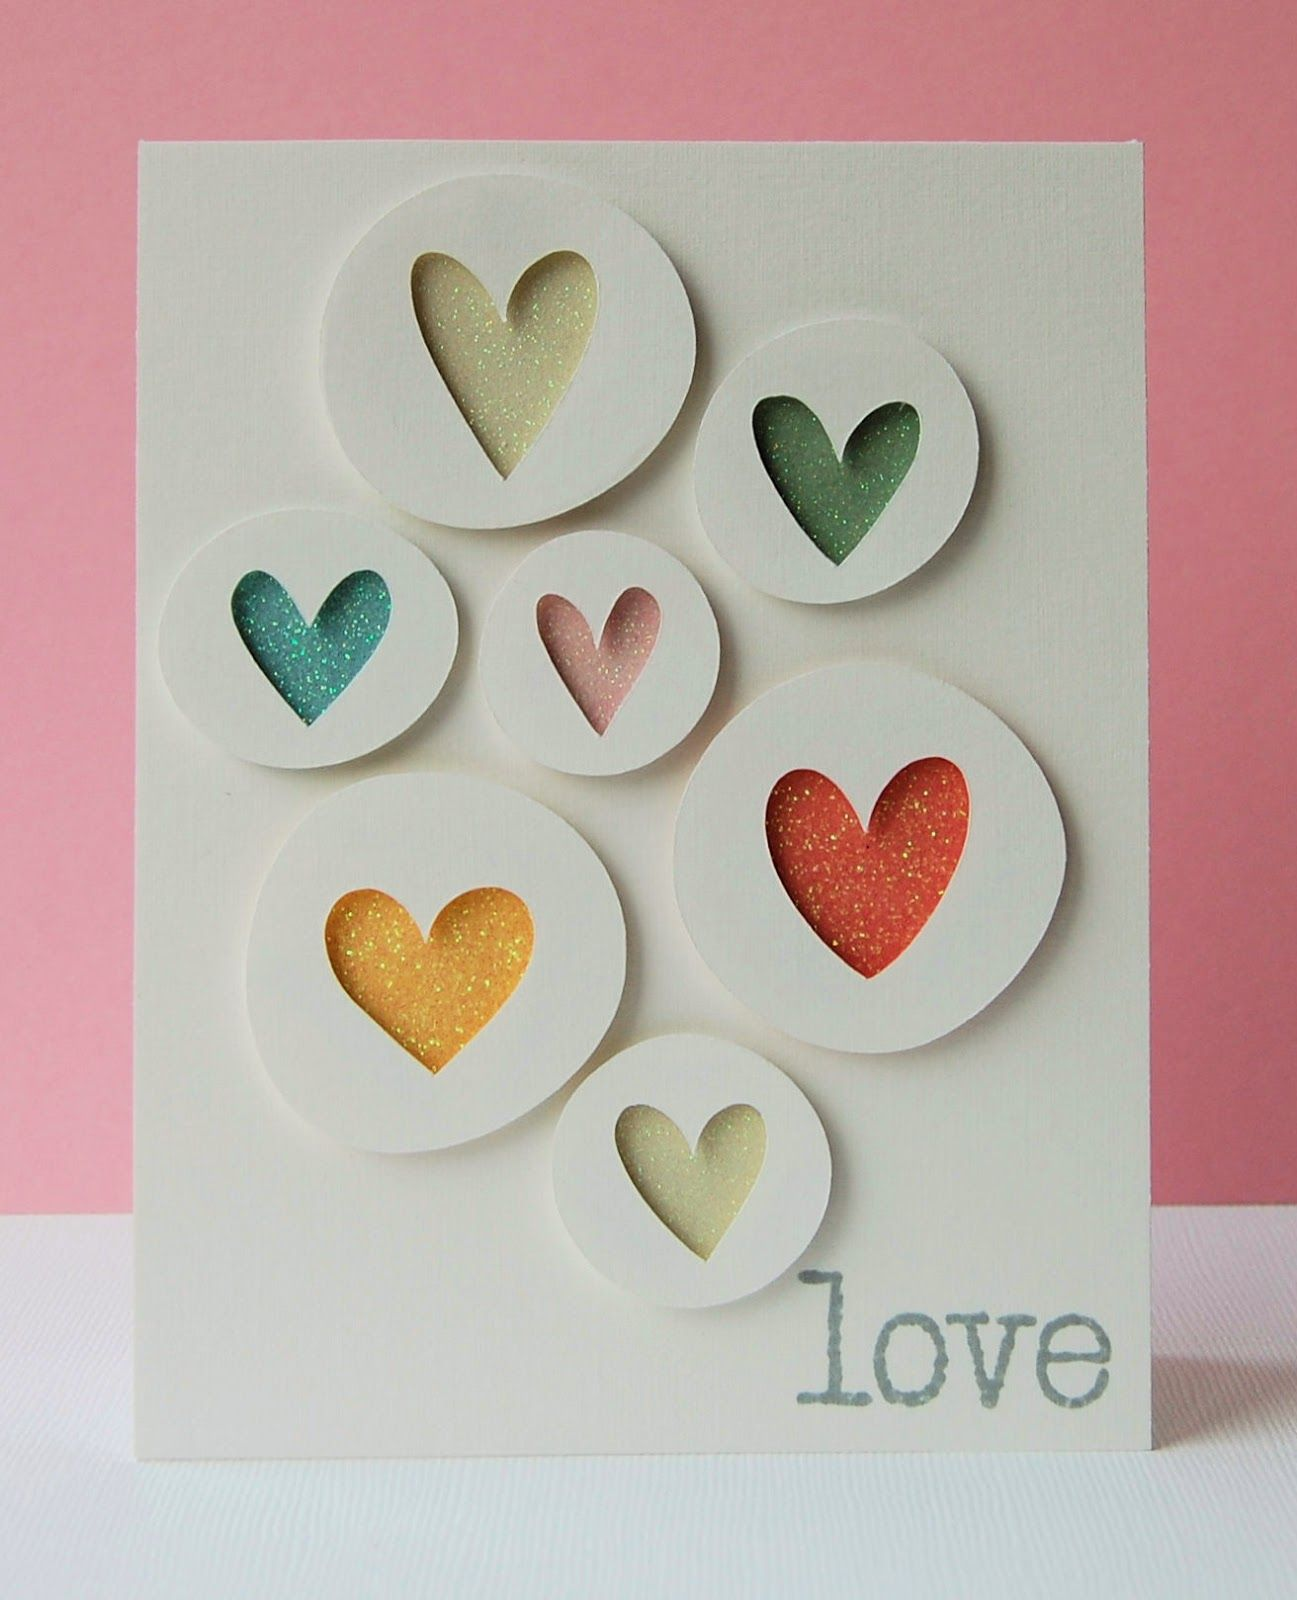 9 handmade valentines cards for her | card crafts | pinterest